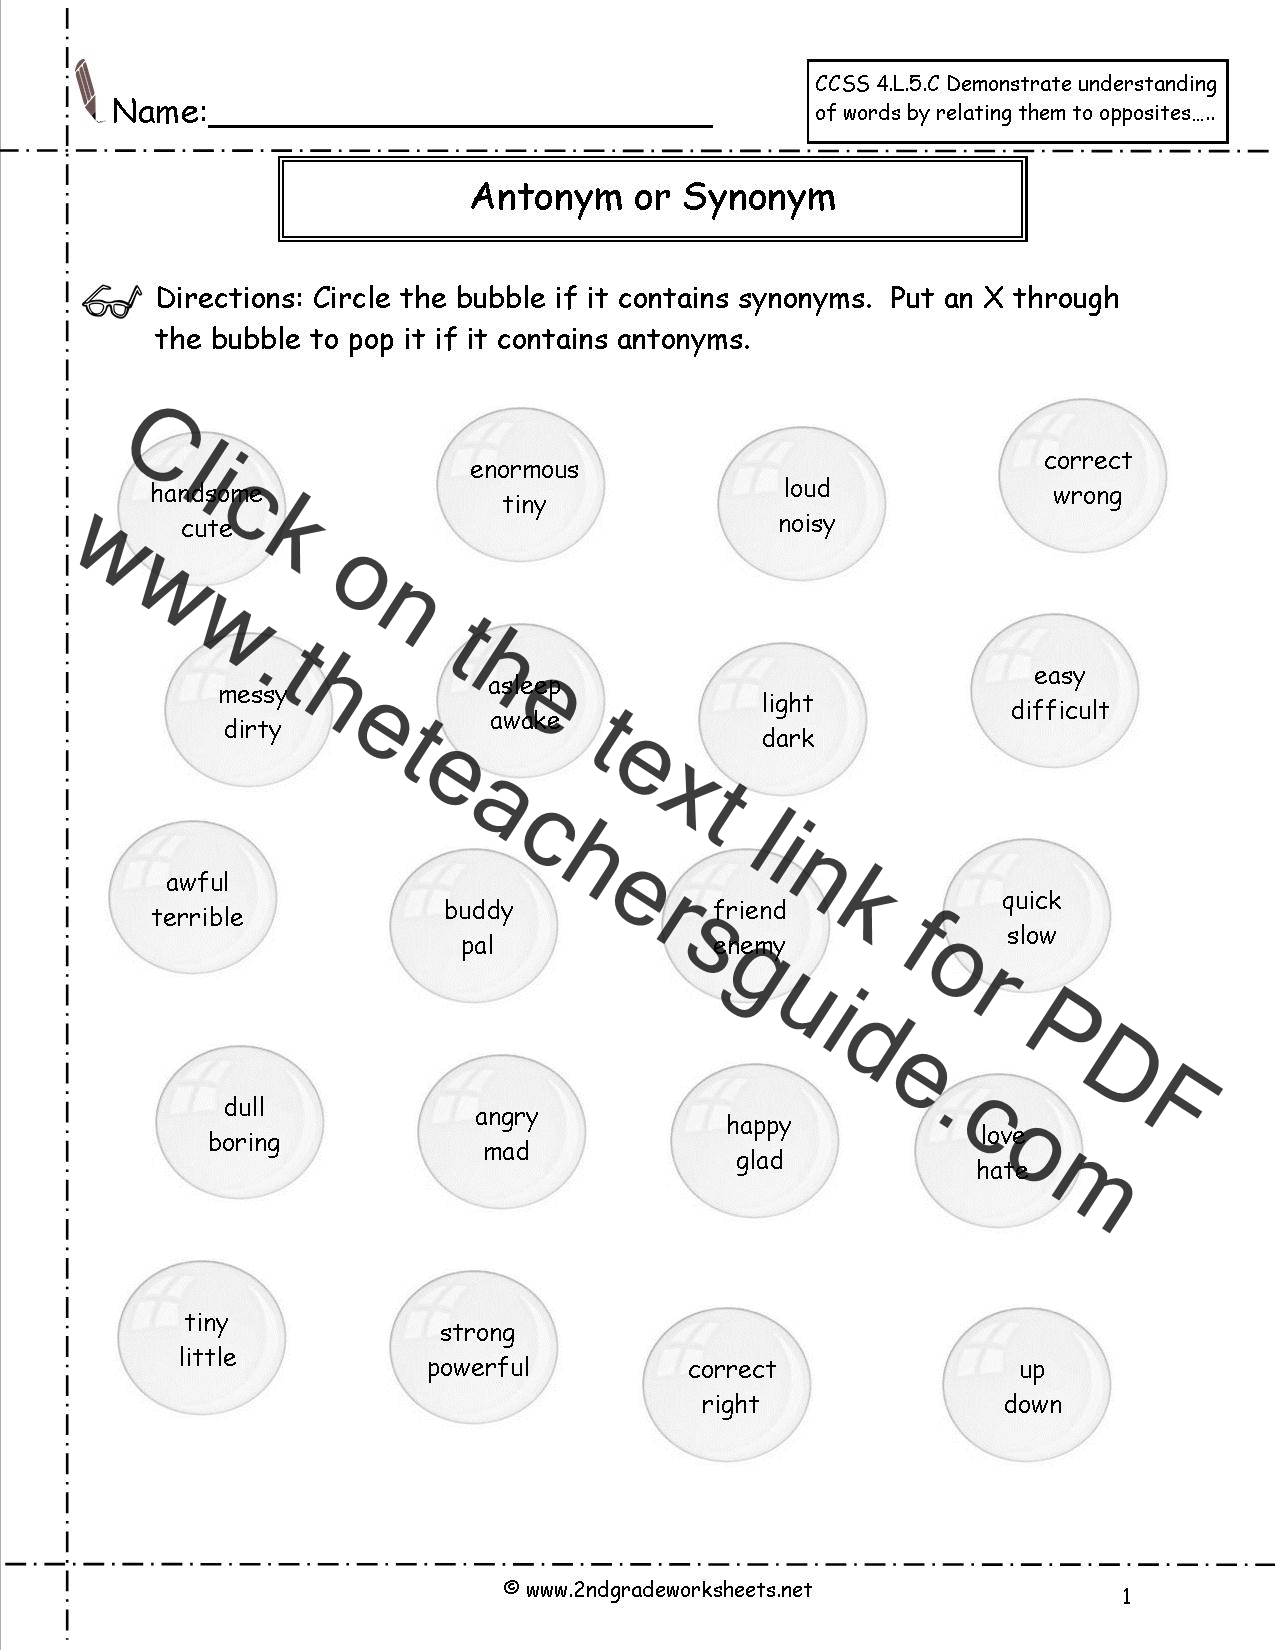 Worksheet Synonyms And Antonyms Worksheets synonyms and antonyms worksheets worksheet